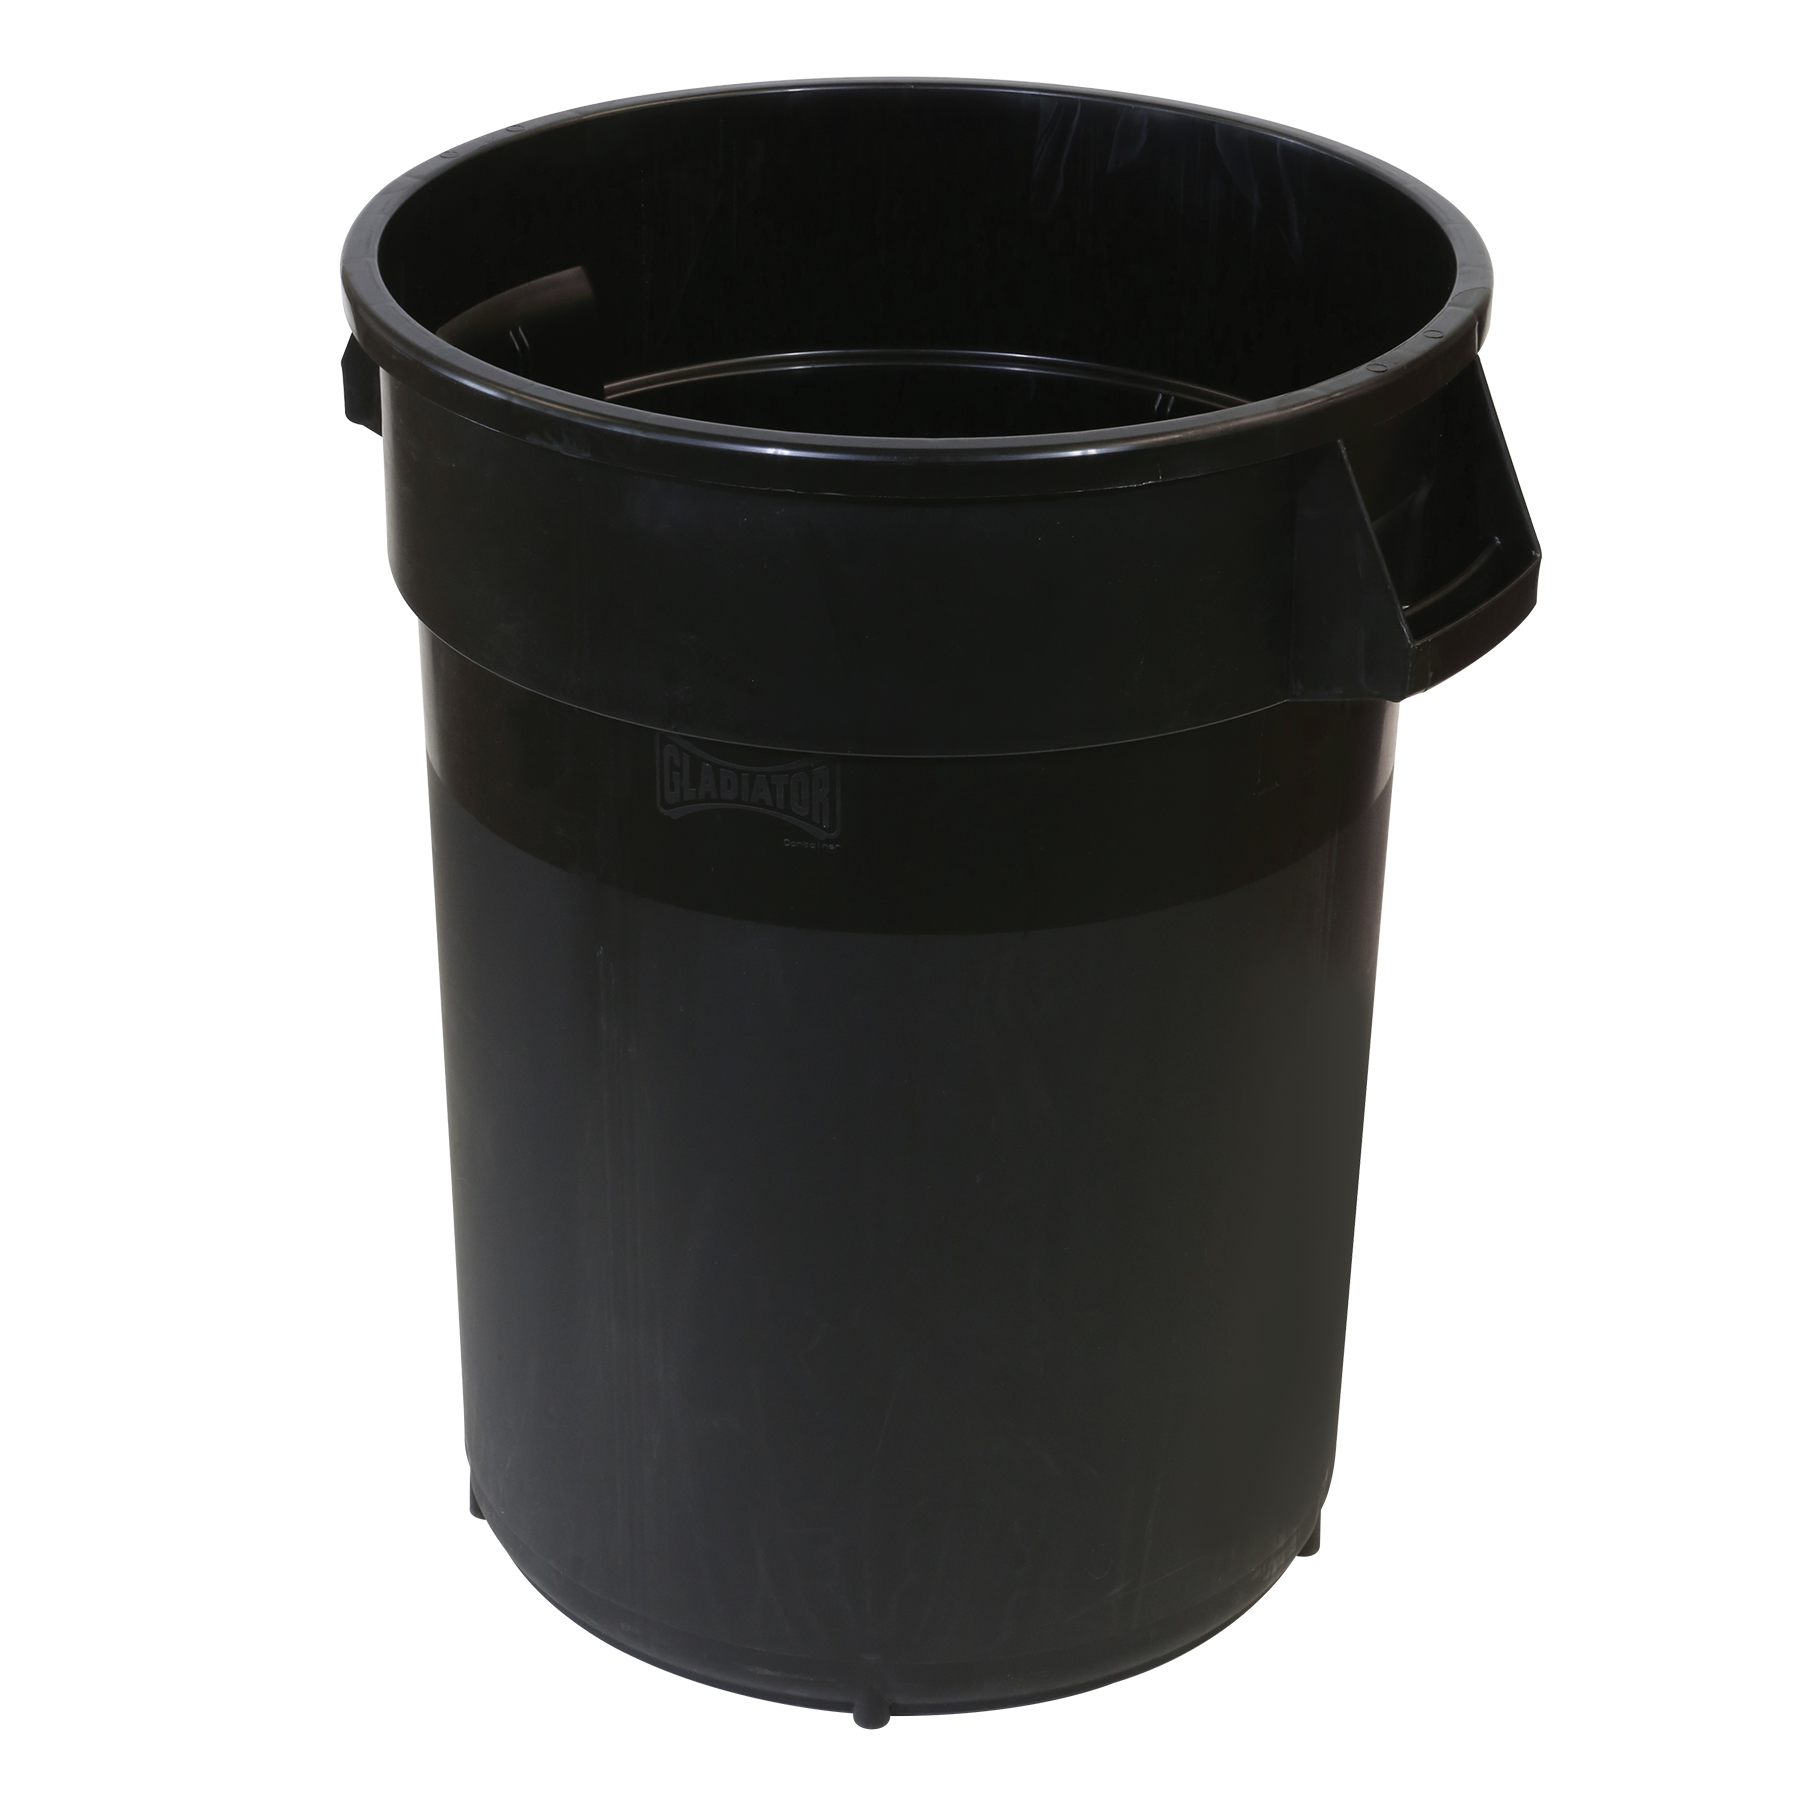 TRASH CAN 44 GALLON MAXIROUGH BLACK